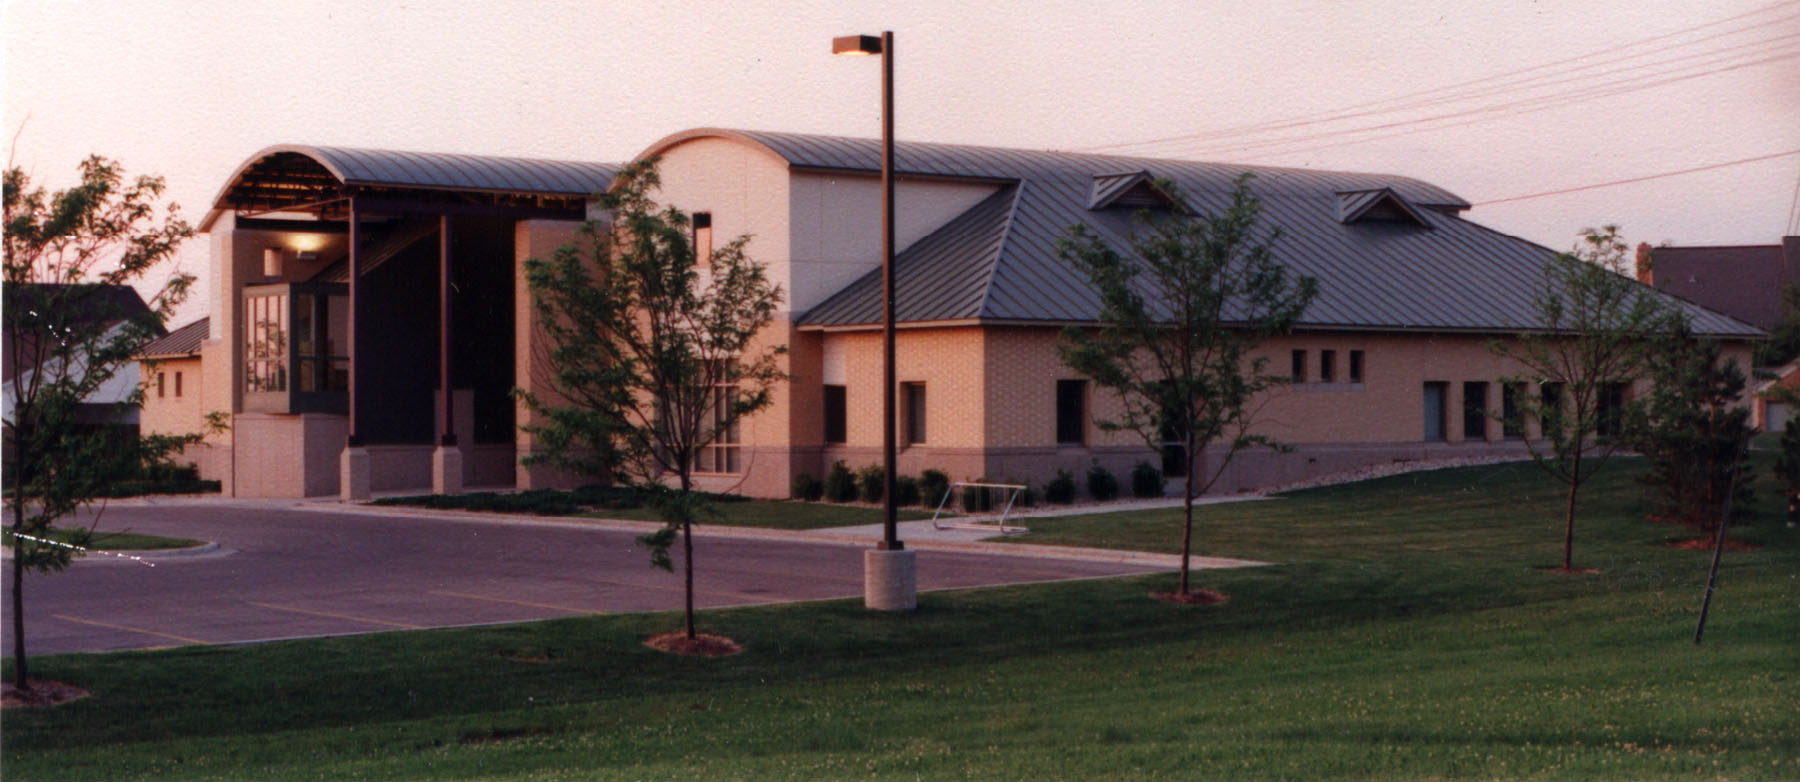 Sauk Quarry Medical Office